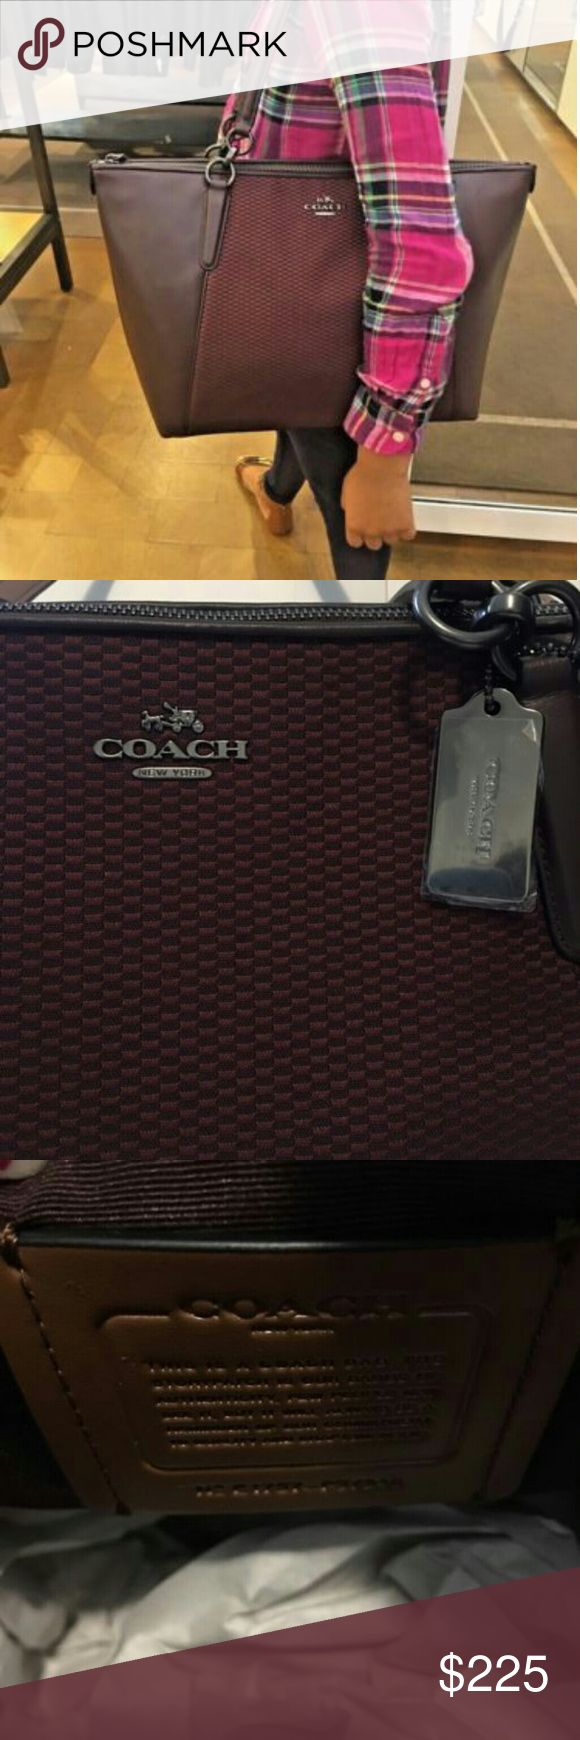 "Coach Legacy Ava Tote Oxblood Jacquard NWT + Gift Leather and Jacquard Zip-top closure Outside large slip pocketDimensions are 12.5"" L x 9.75"" H x 5"" DDouble handles have a 9"" drop Gift receipt enclosed Ships priority via USPS❤❤❤❤! Coach New York Bags Totes"